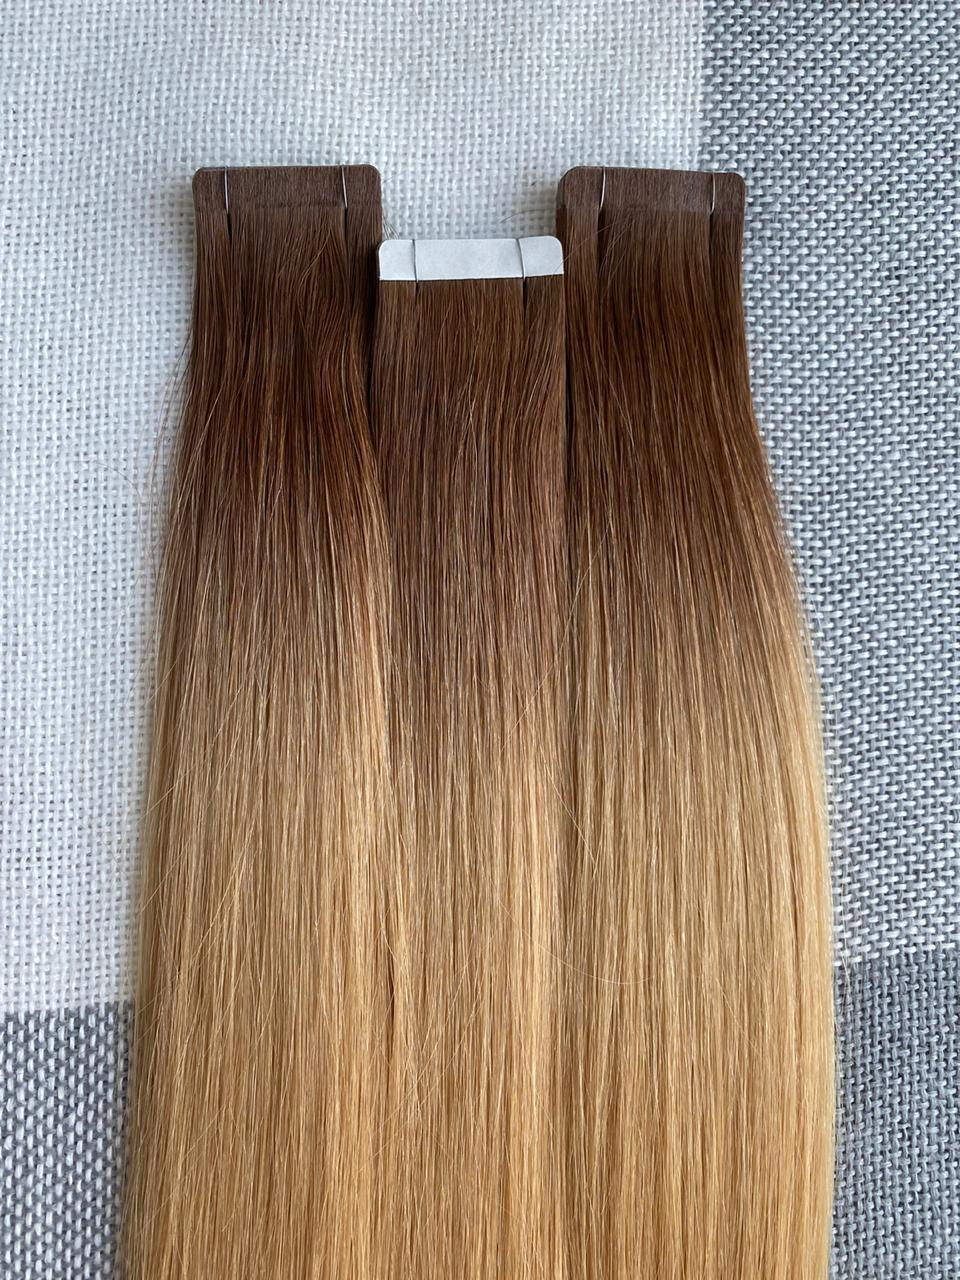 best way to remove tape in hair extensions without damaging hair